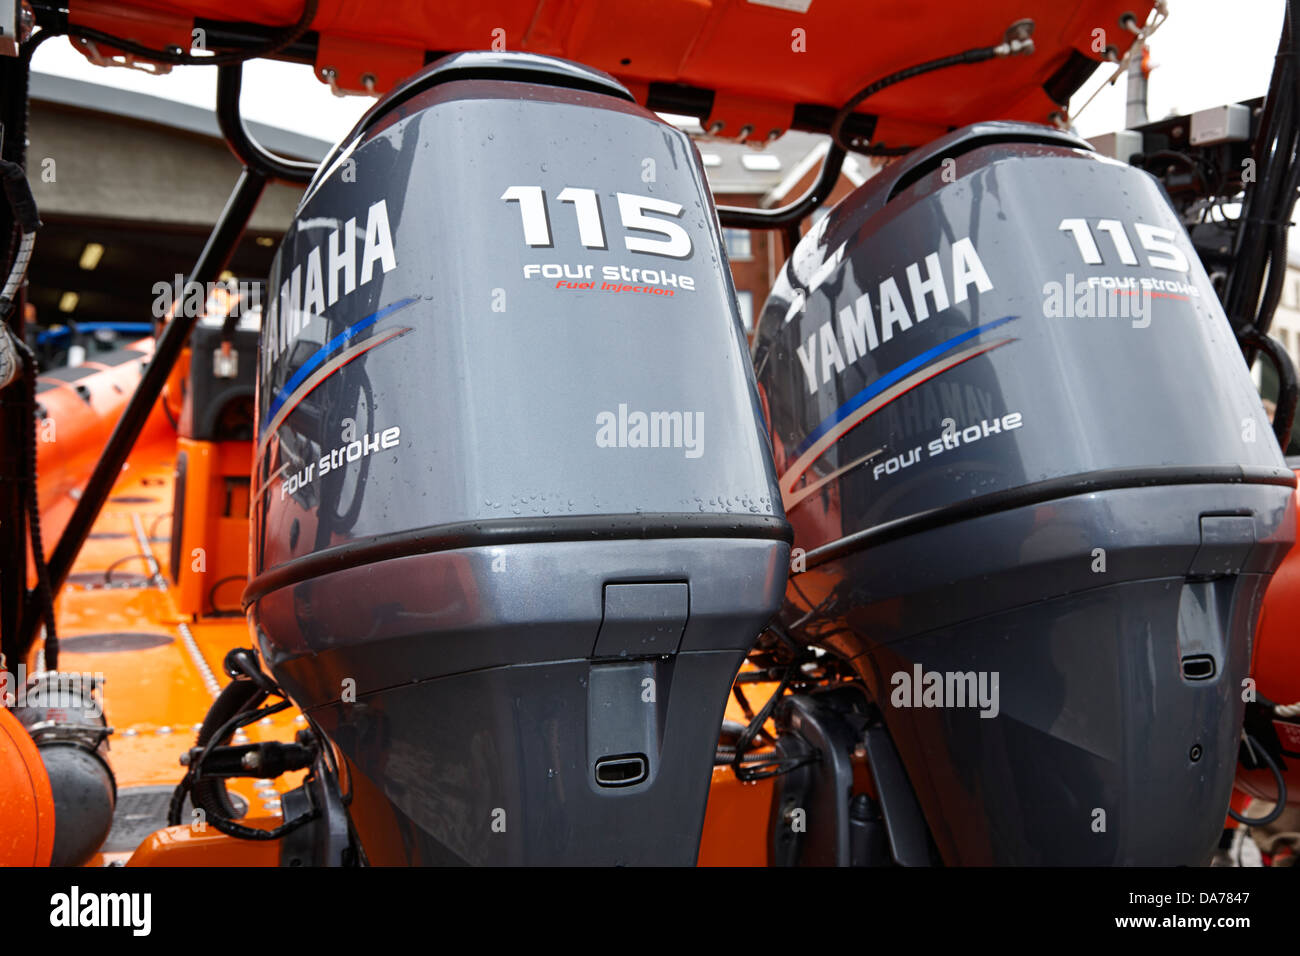 twin yamaha 115 horsepower four stroke outboard engines on rnli lifeboat county down northern ireland uk - Stock Image